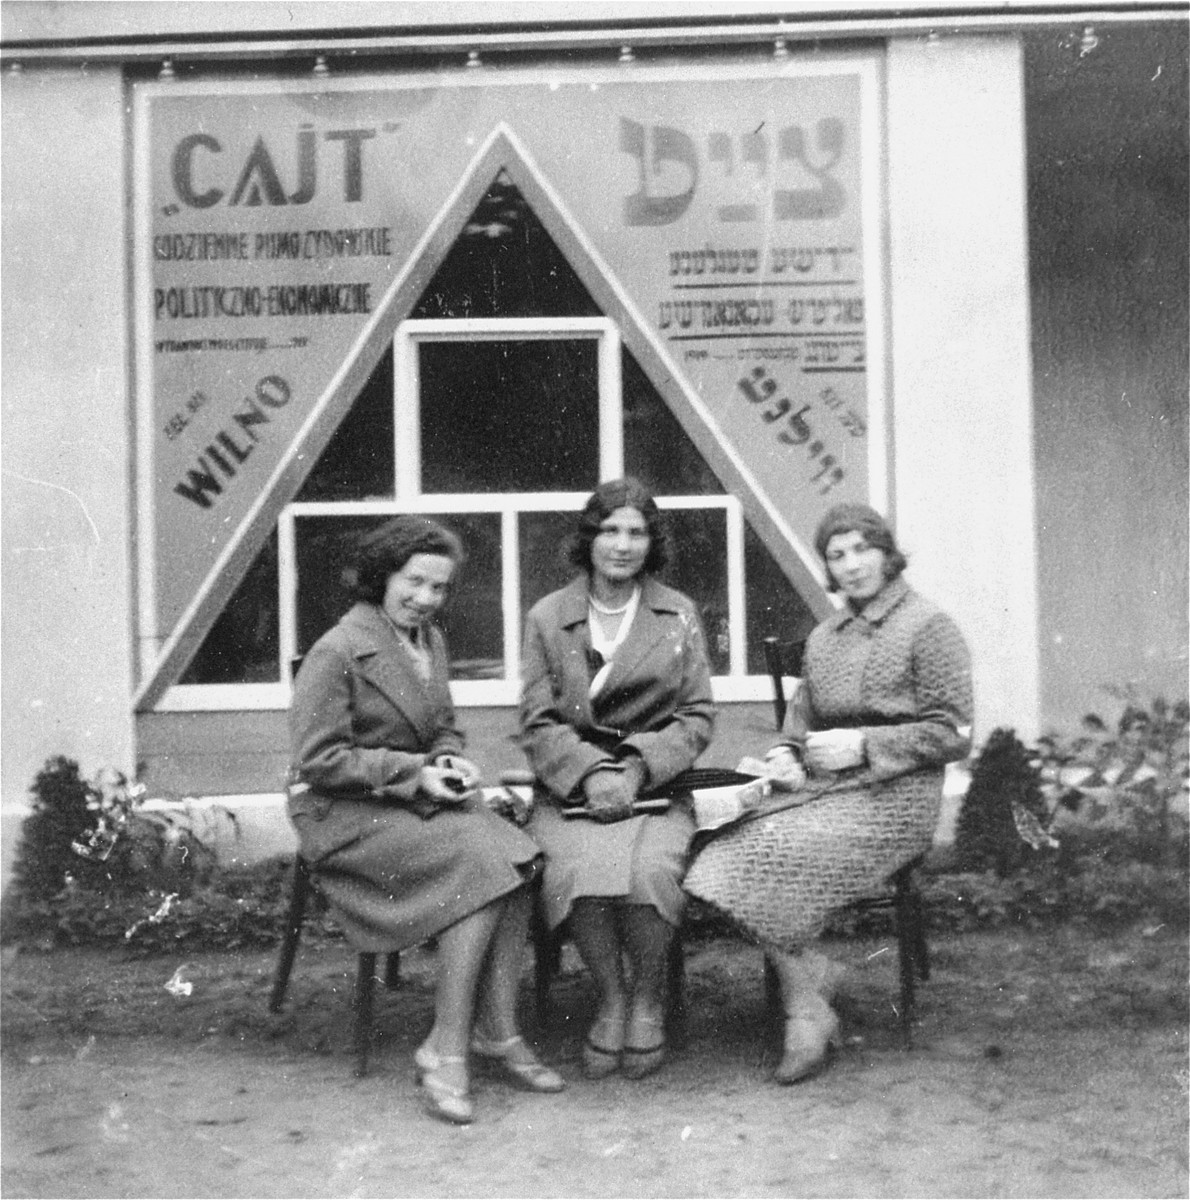 "Three young Jewish women sit in front of the editorial office of the Yiddish daily newspaper, ""Cajt"".  Pictured from right to left are: Raya Magid; her sister Katia Magid; and a friend, Nuta Klausner."